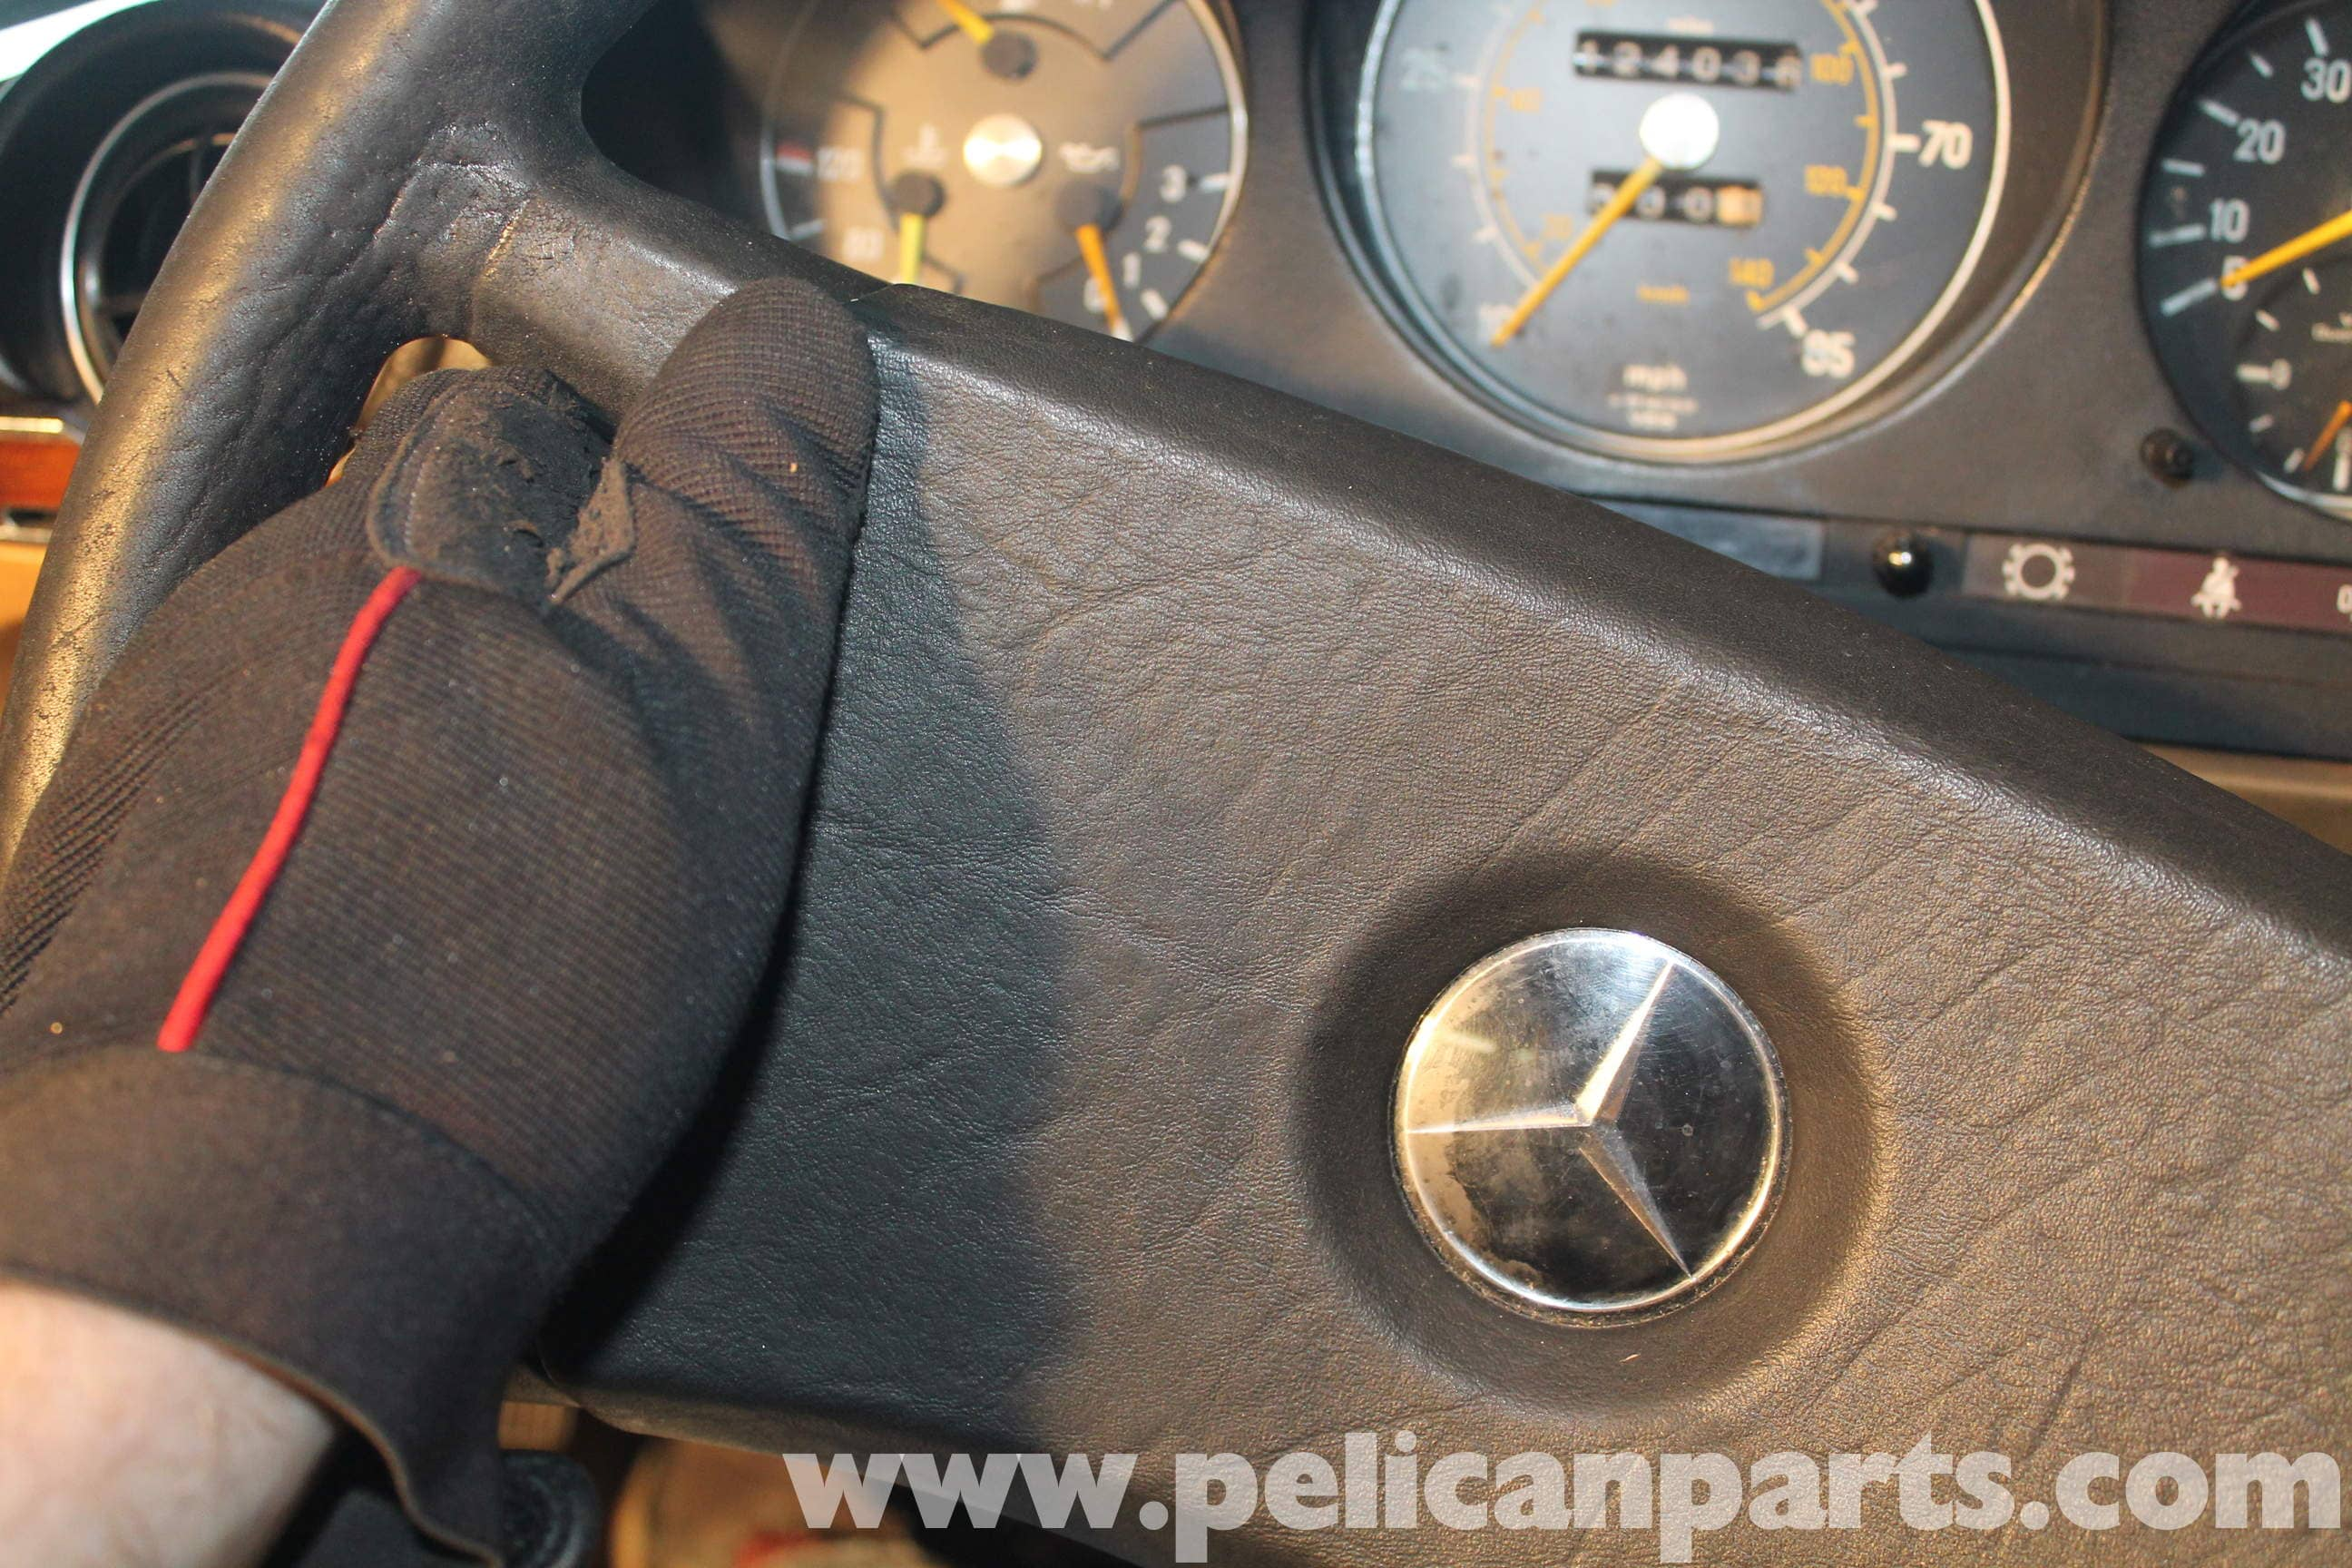 Knocking in the steering column: causes of malfunction and solutions